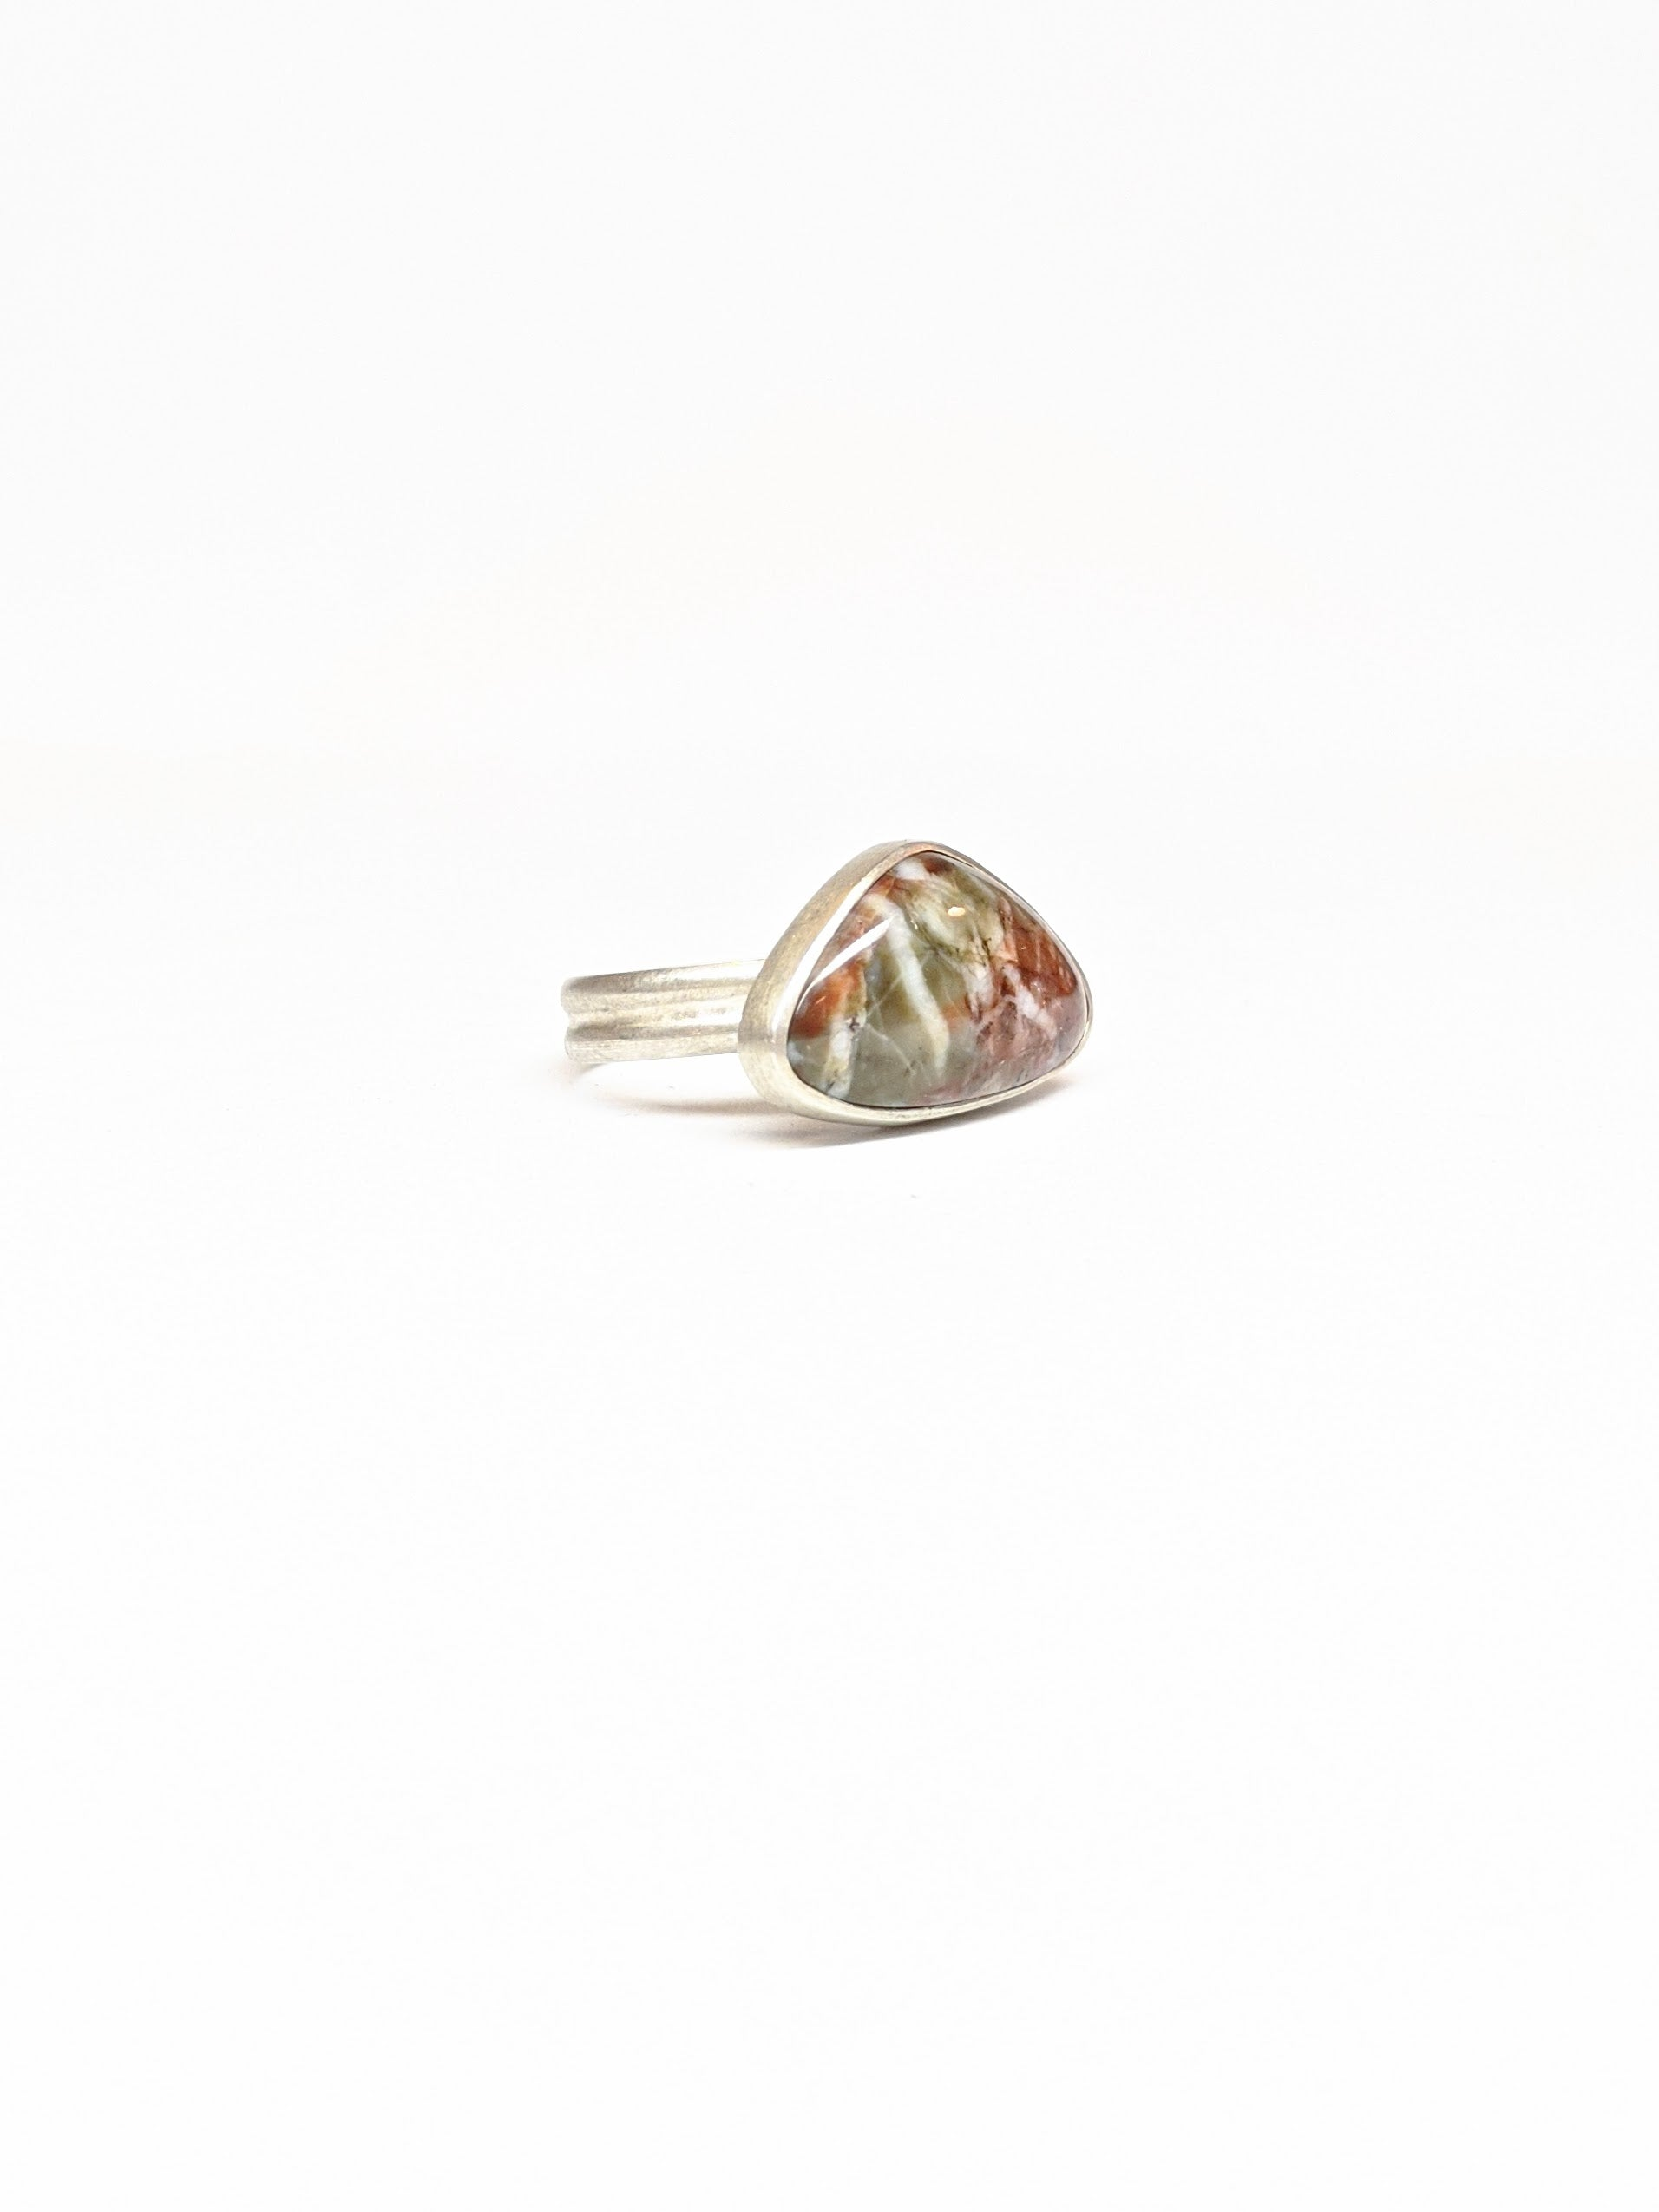 California Jasper Triangle Ring - Size 7